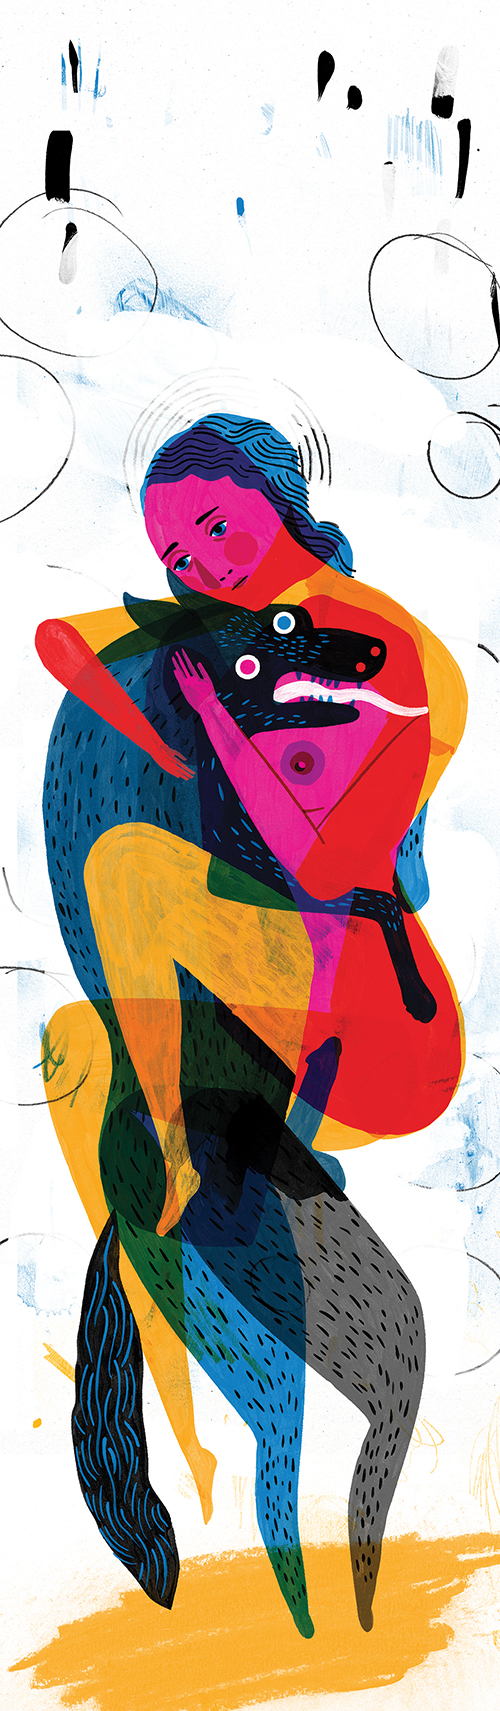 """Demon Dog"" by Keith Negley"